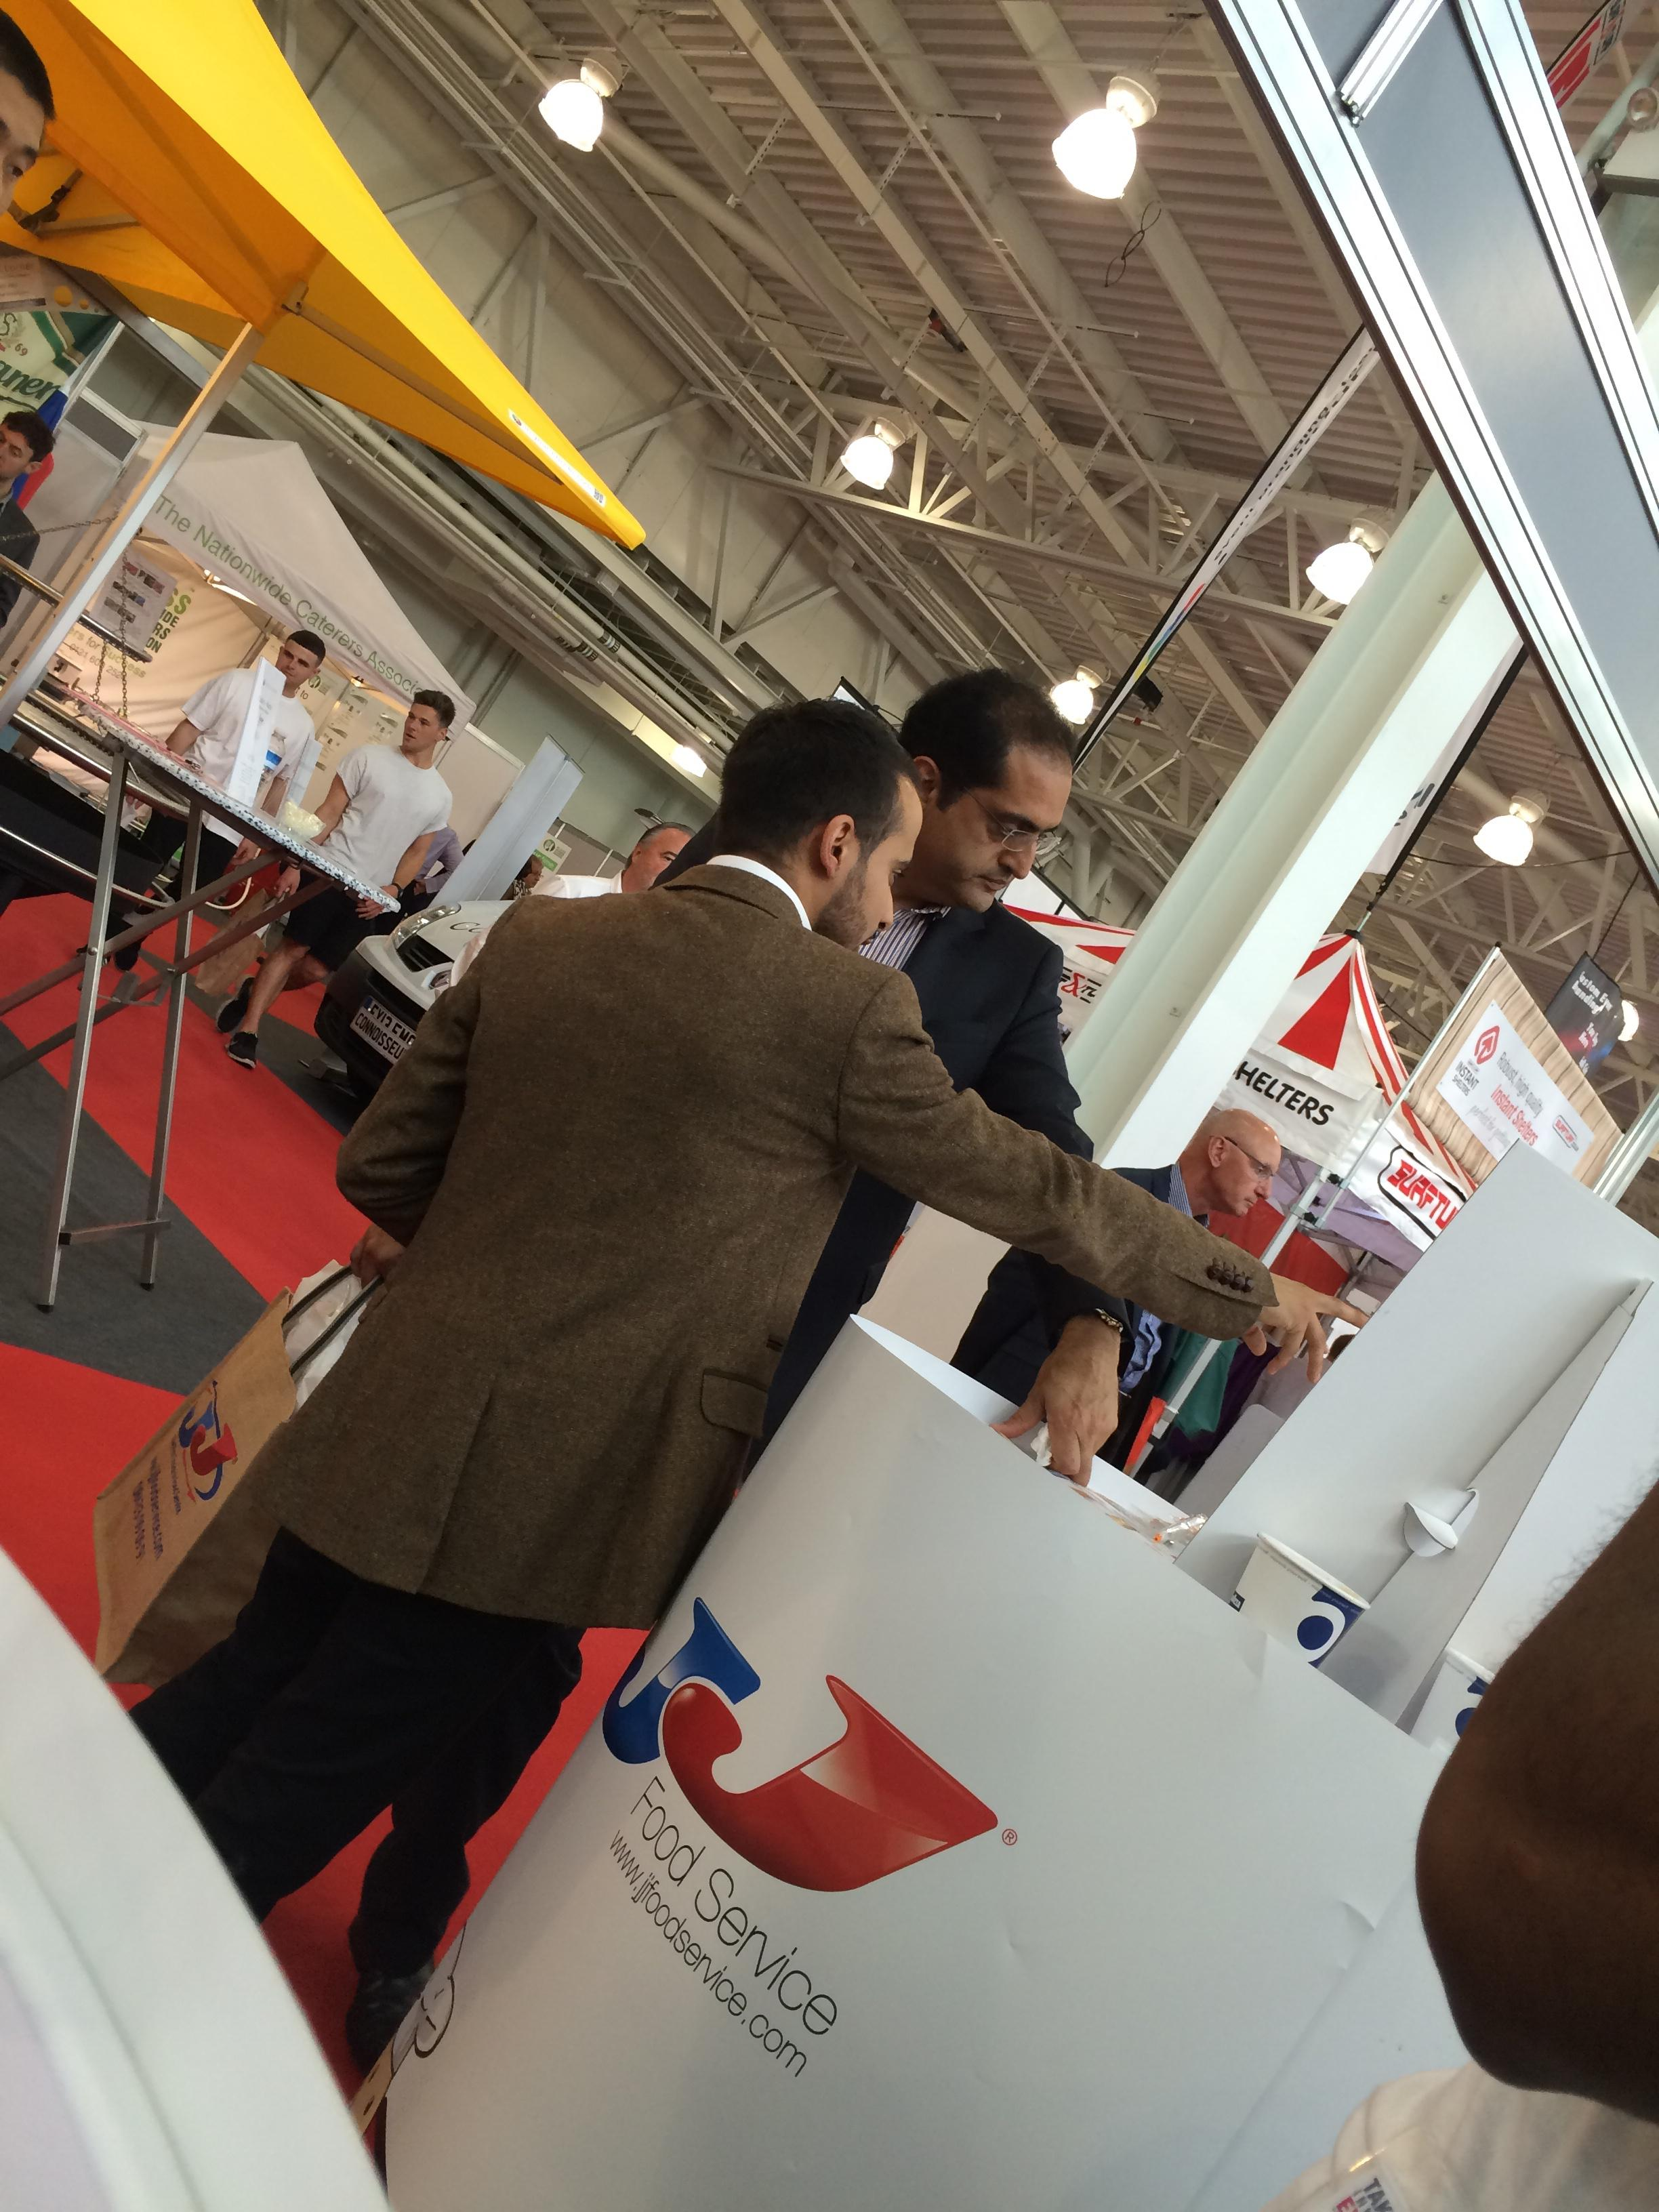 TakeAwayExpo2014 - Collaborating with our visitors